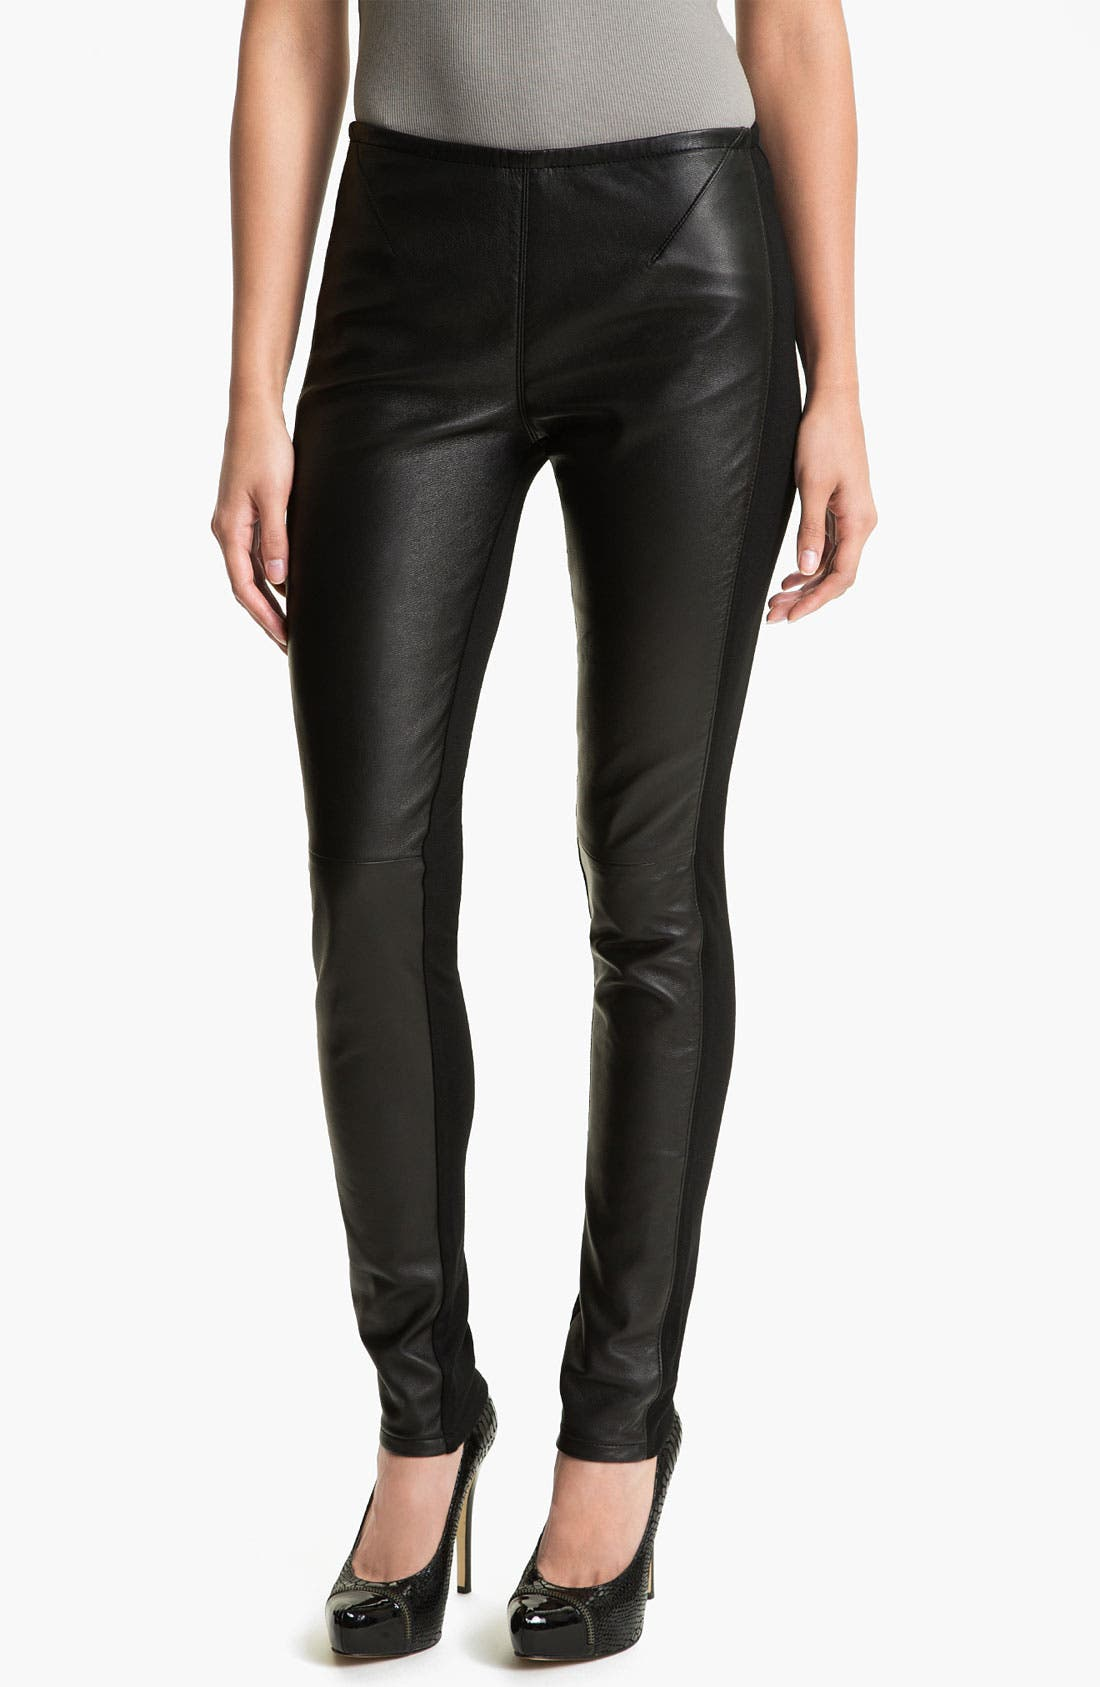 Alternate Image 1 Selected - Two by Vince Camuto Faux Leather & Knit Leggings (Petite)